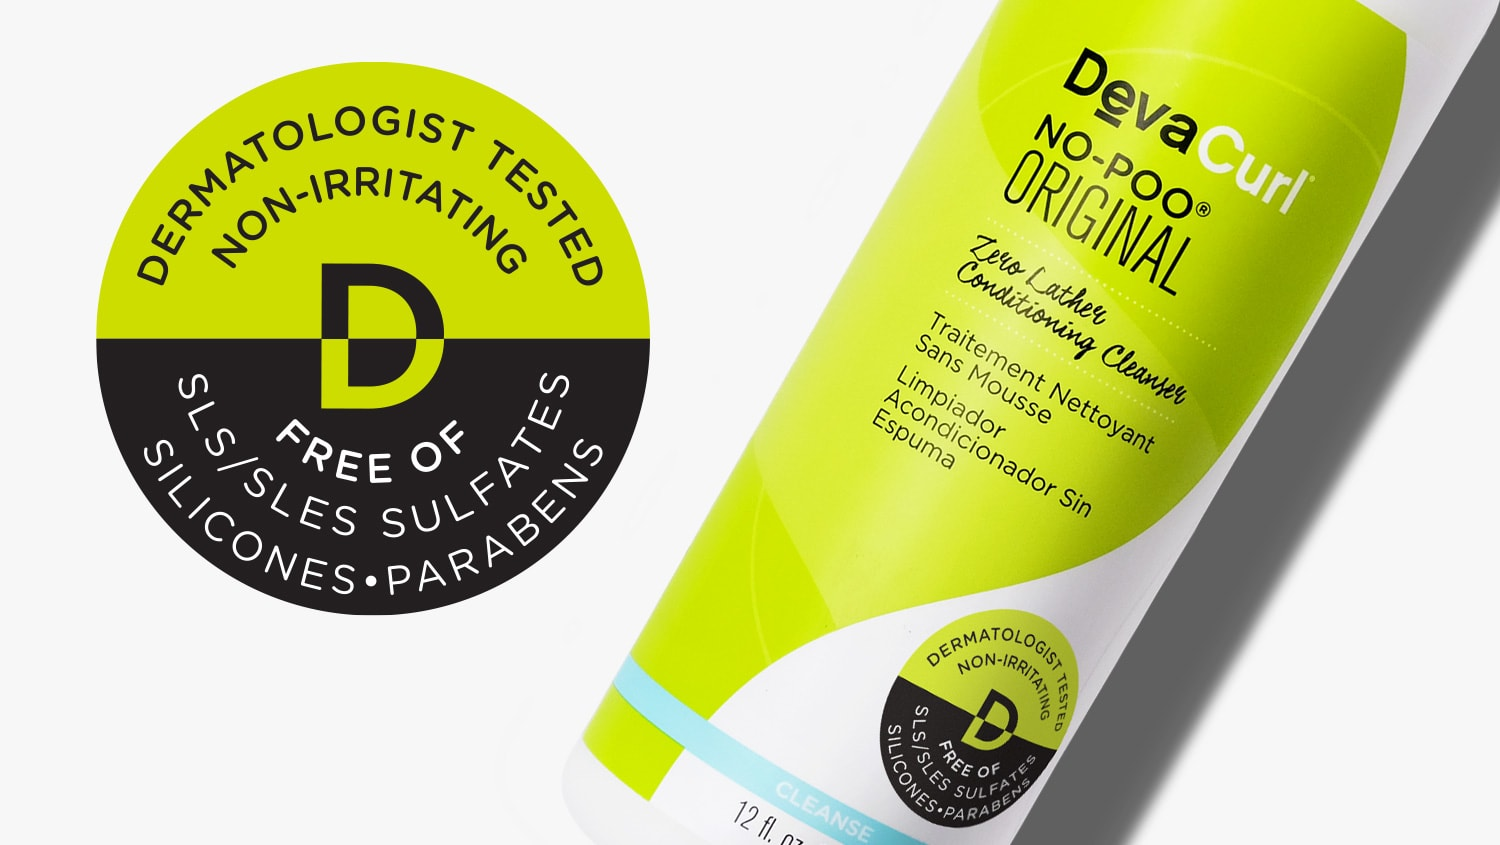 Dermatologist Tested - Non Irritating label and No-Poo Original bottle